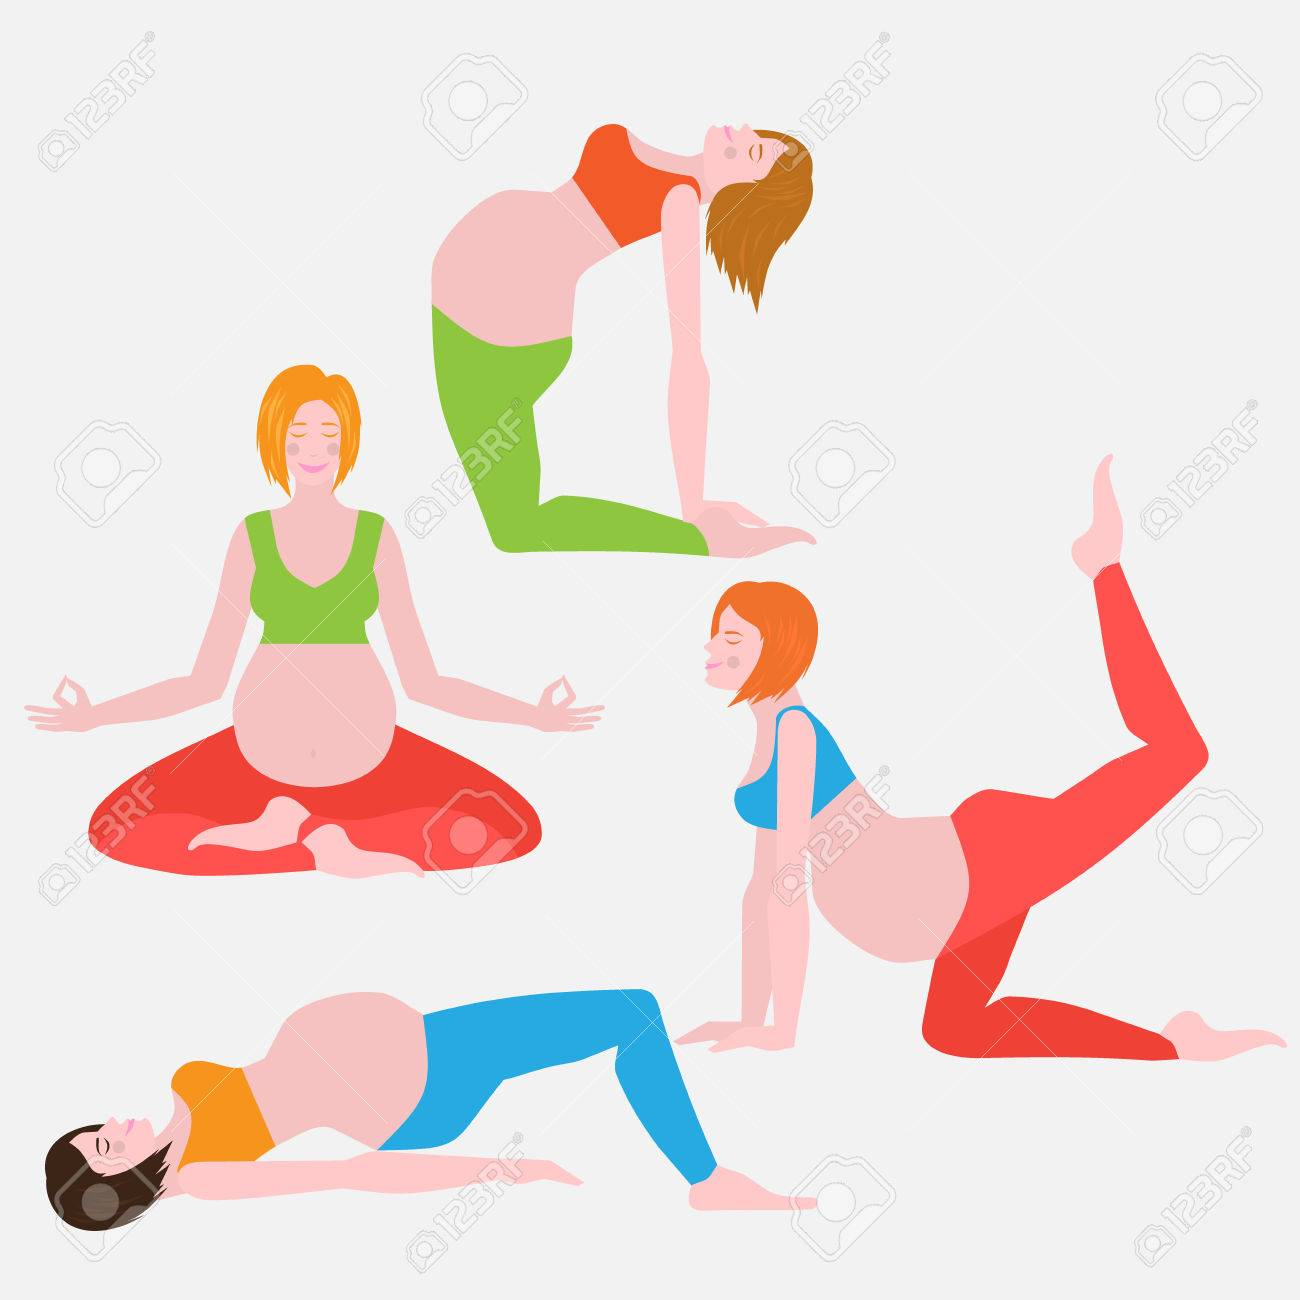 Yoga Poses For Pregnant Women Future Mother Healthy Lifestyle Royalty Free Cliparts Vectors And Stock Illustration Image 66400170